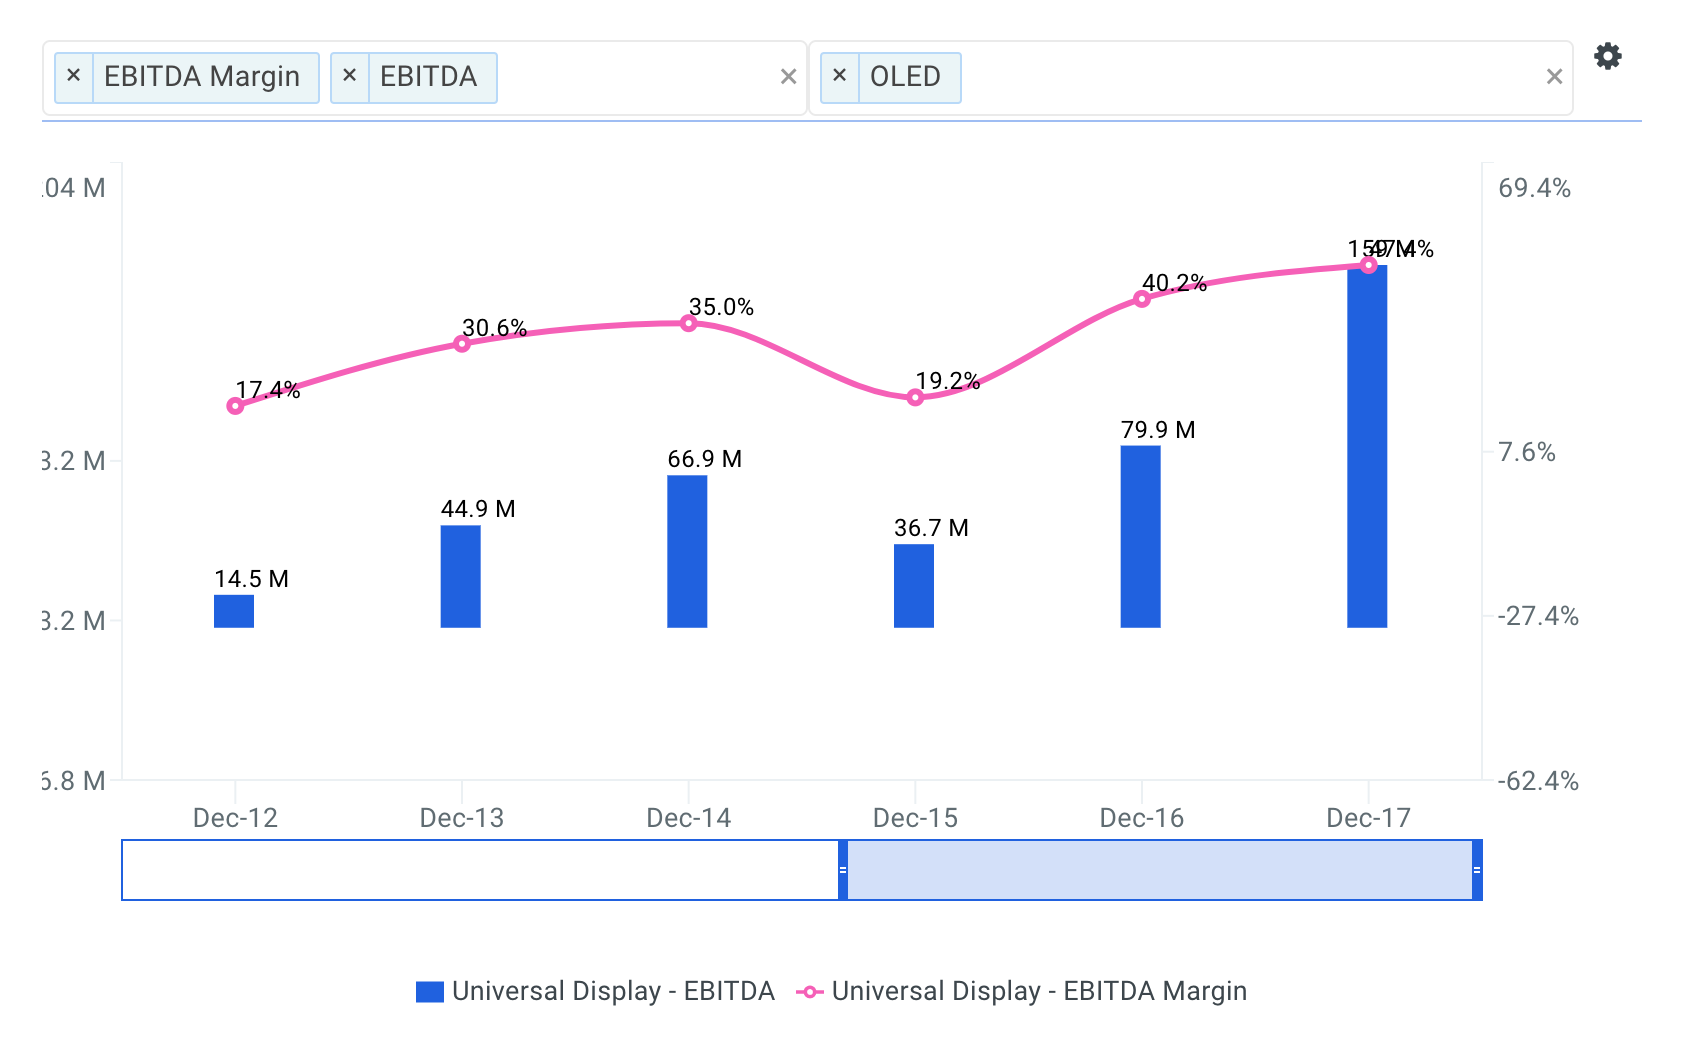 Universal Display Historical and Projected EBITDA Margin Chart